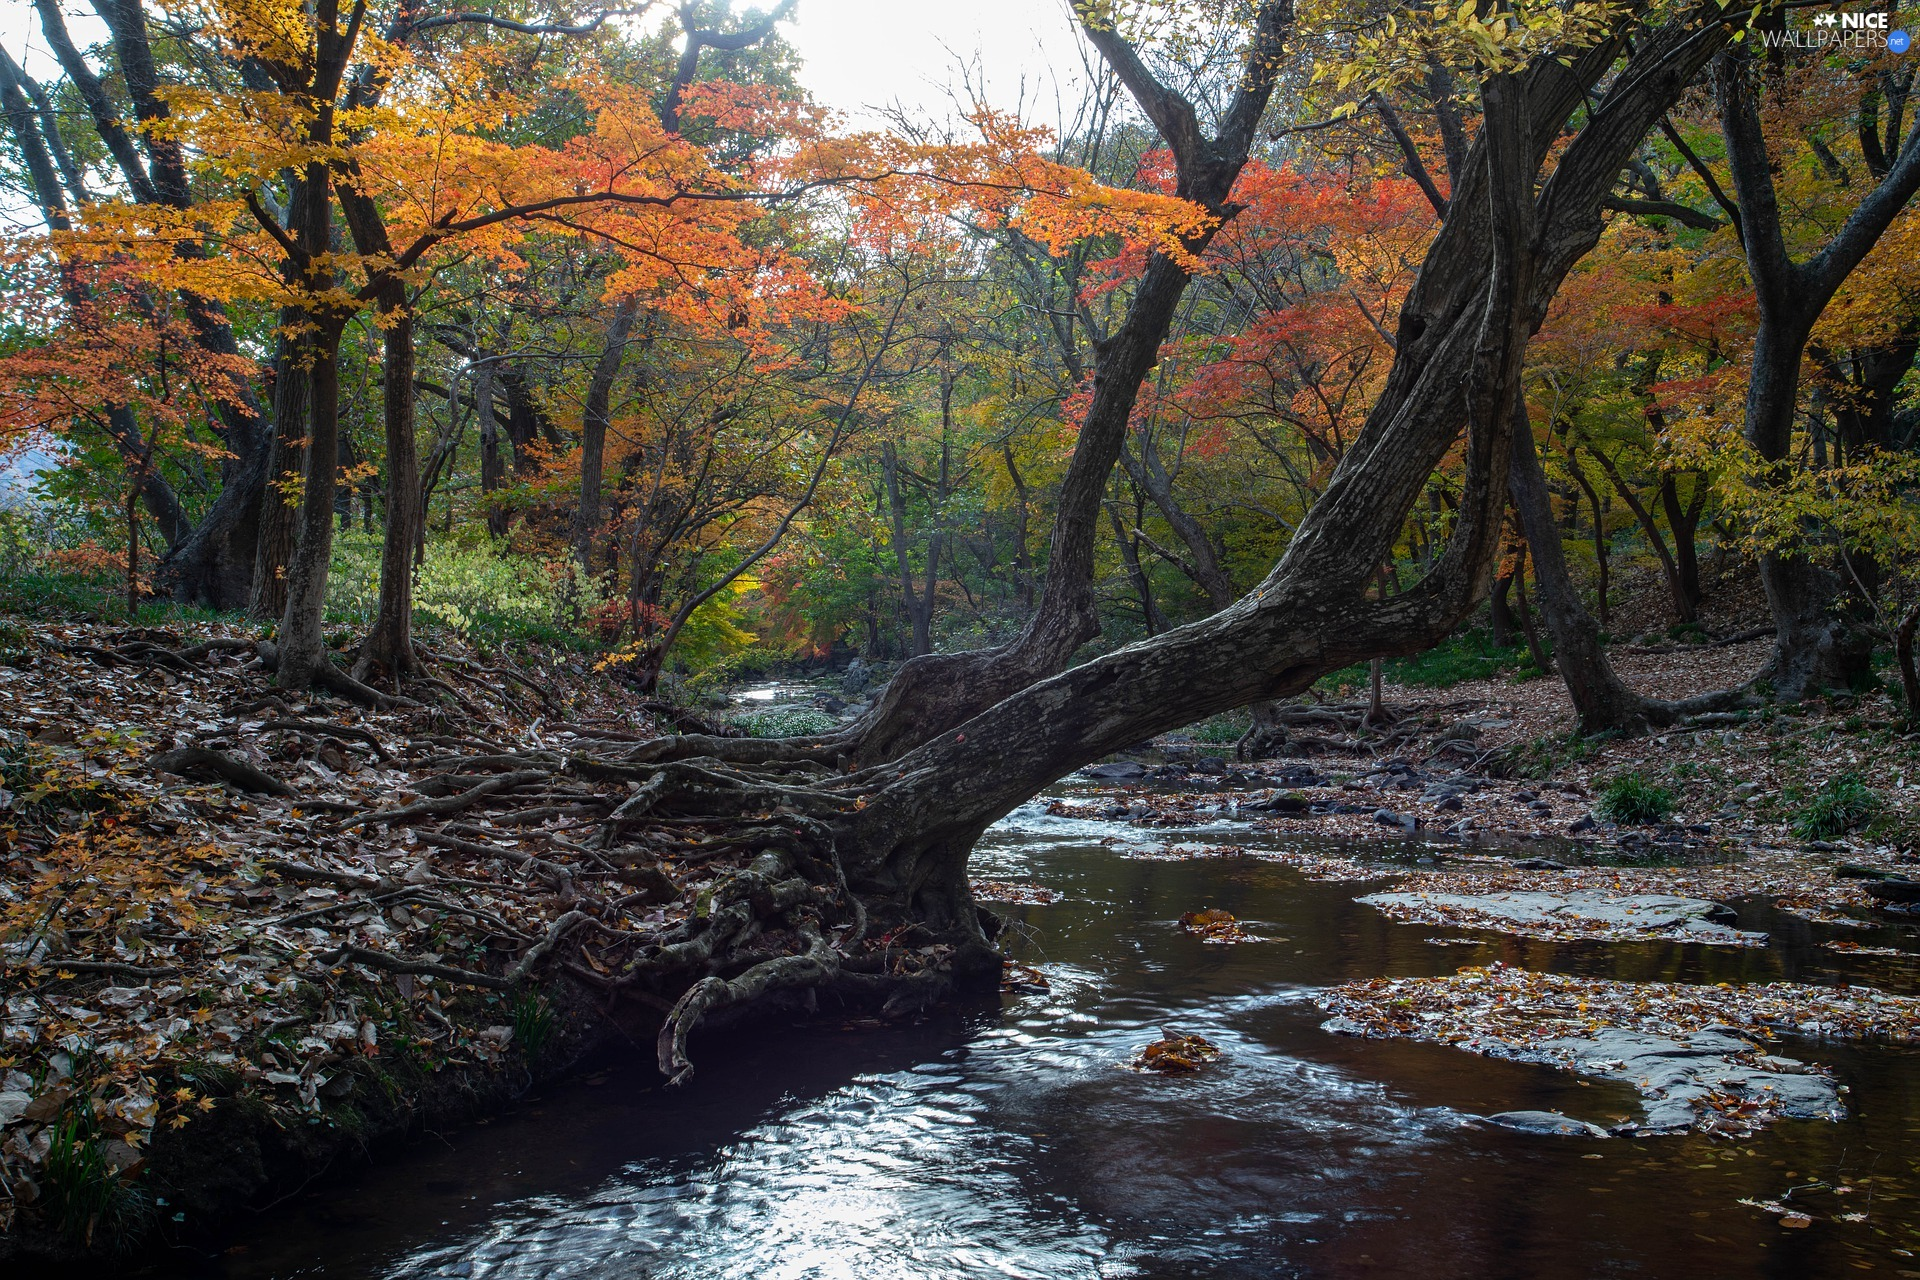 trees, viewes, River, inclined, roots, forest, autumn, trees